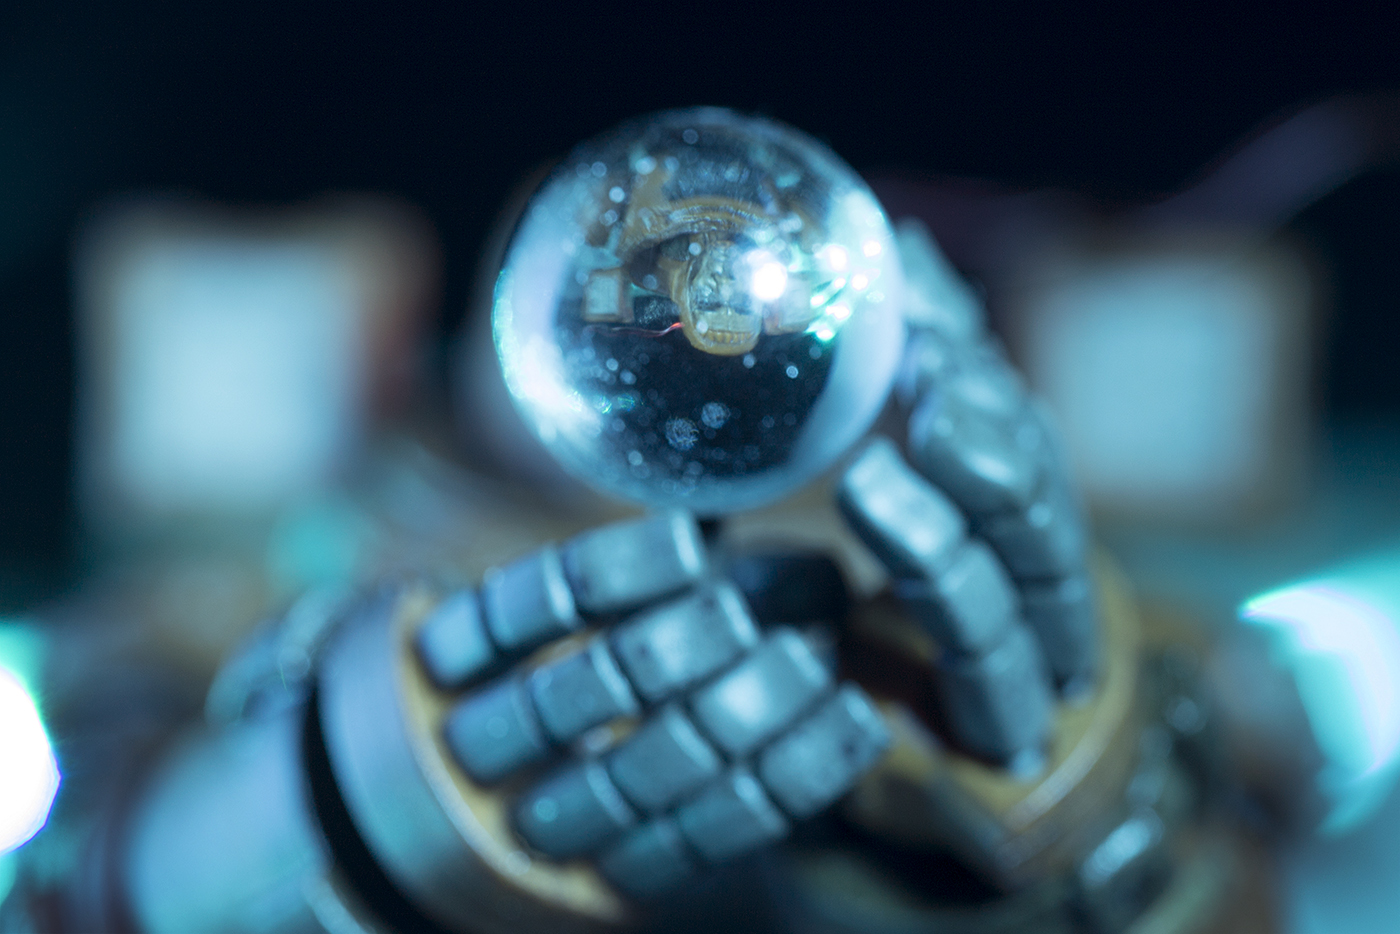 Astronaut mech sut hands holding glass orb with face reflected, toy photography by Tourmaline .